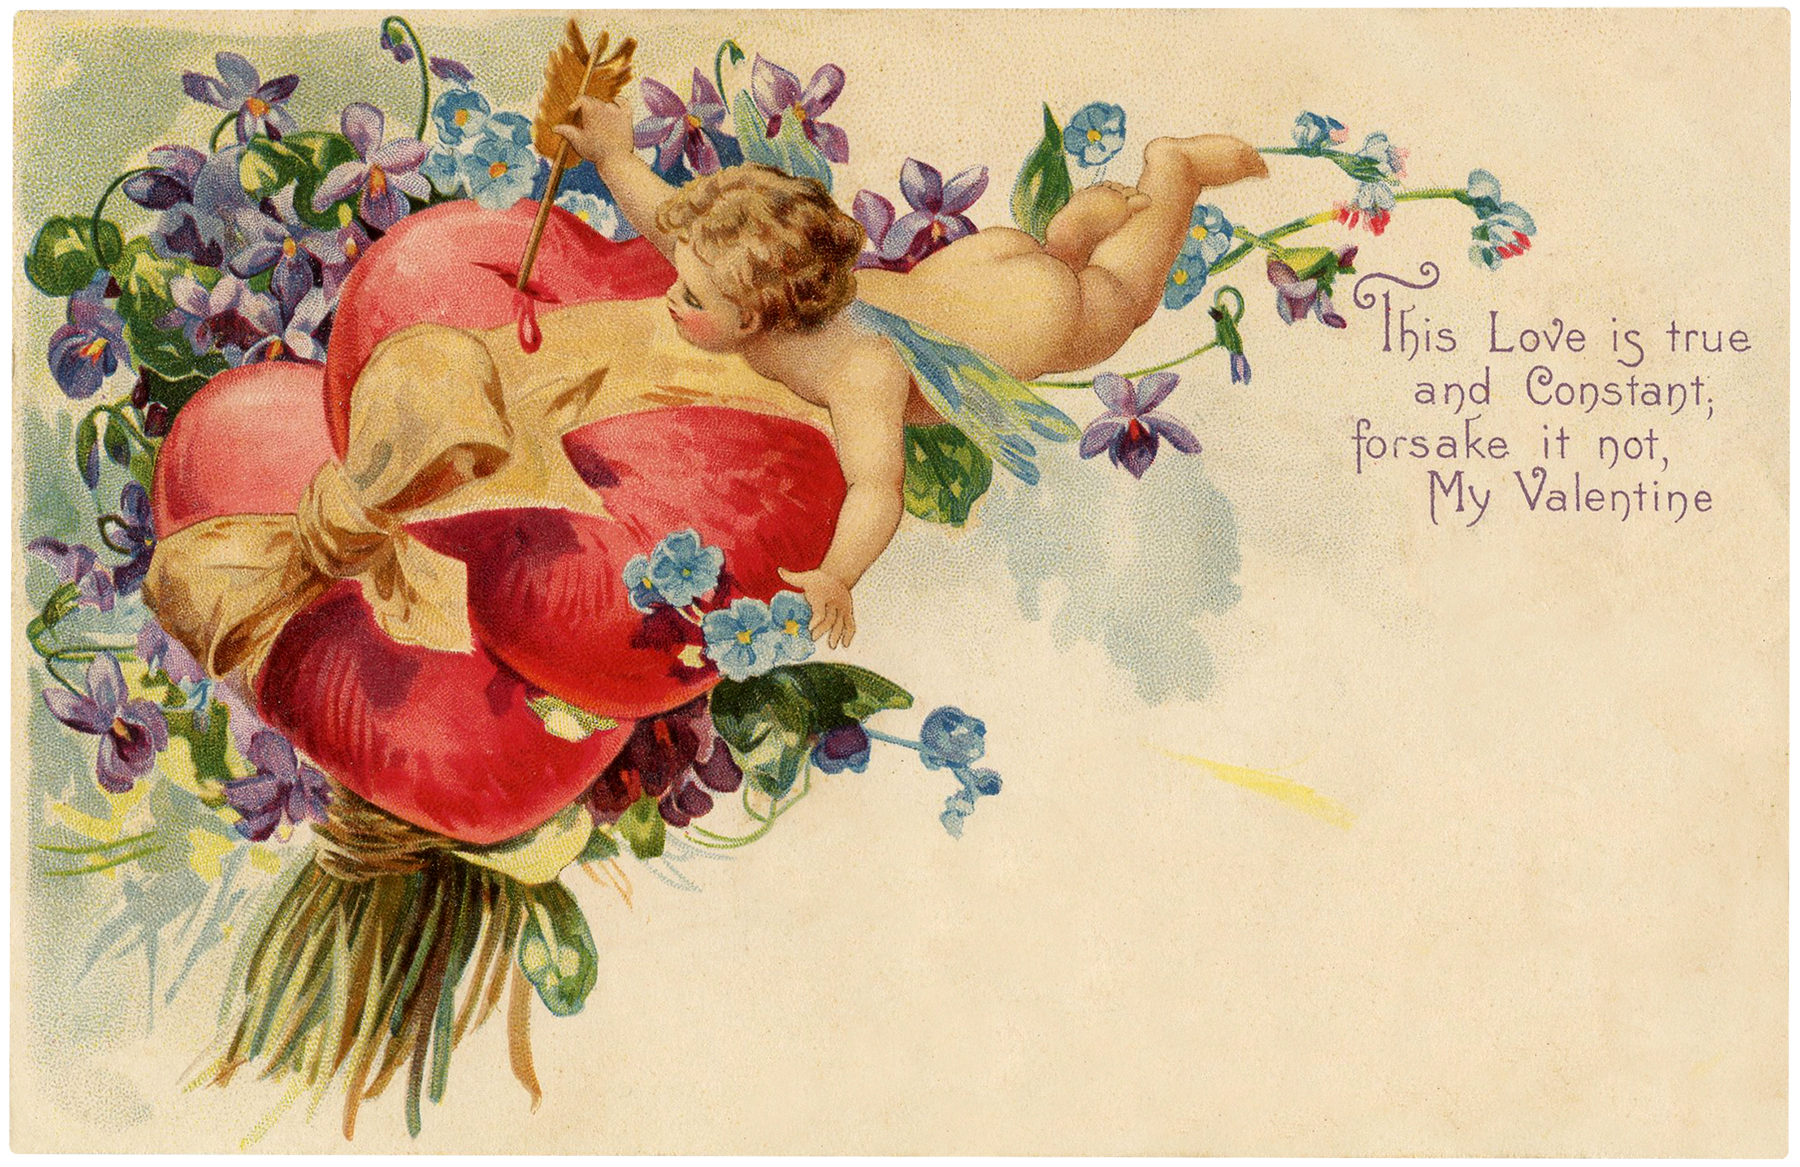 Vintage Valentine Pictures Gallery 54 images 1800x1167